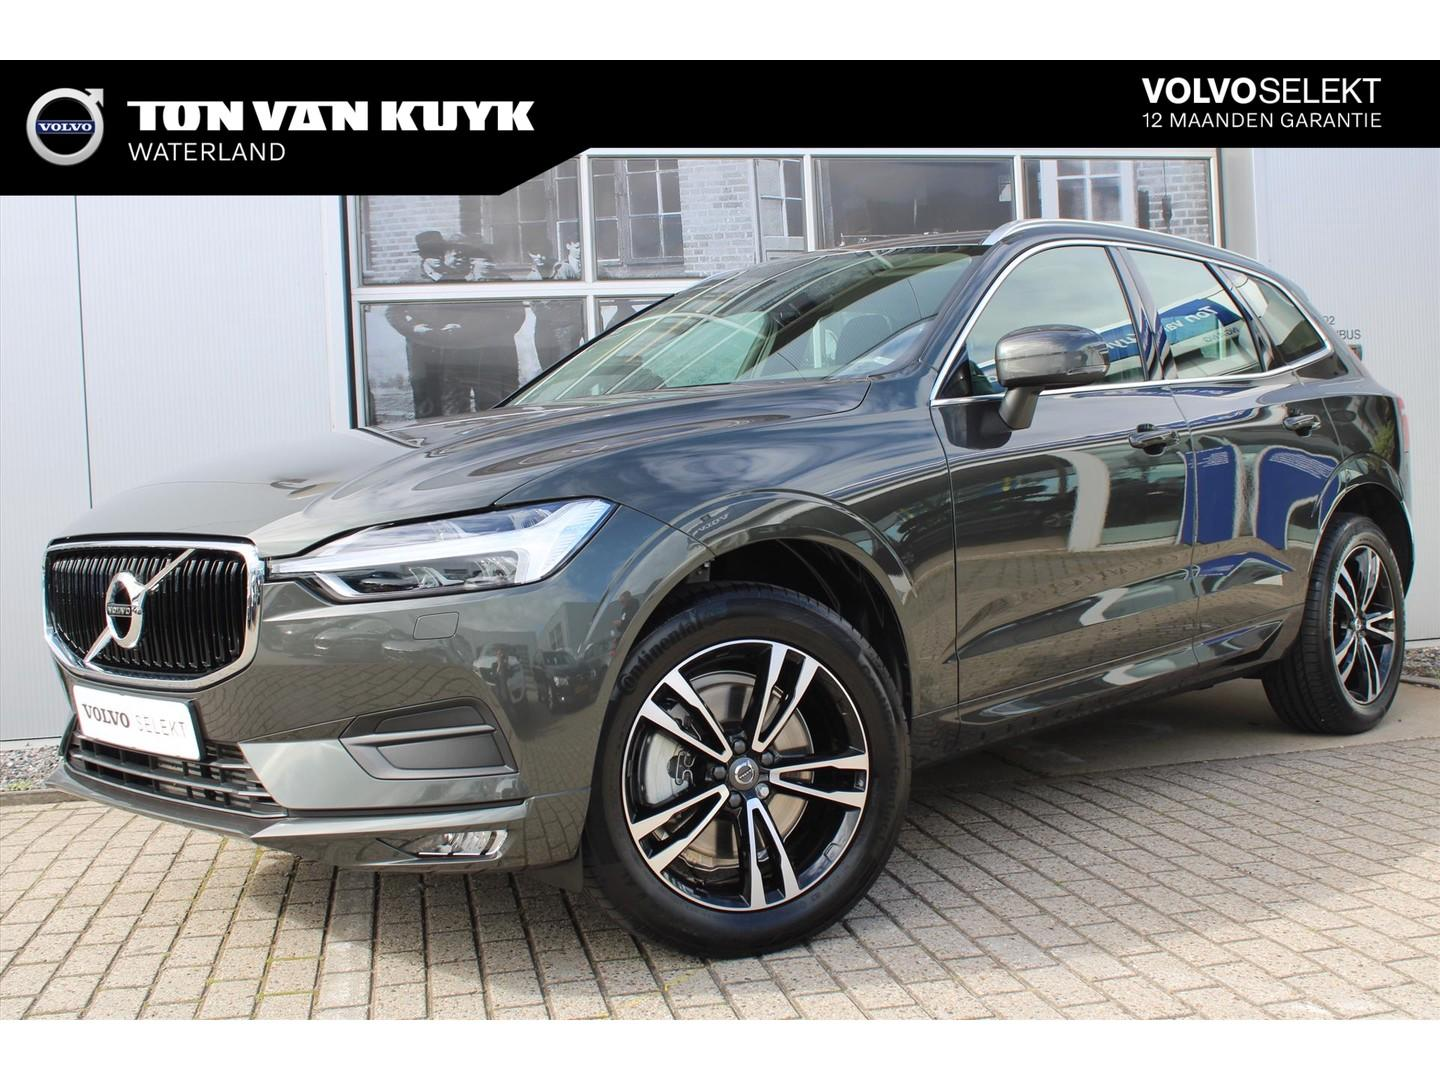 Volvo Xc60 T5 2.0 250pk momentum automaat / versatility / business pack